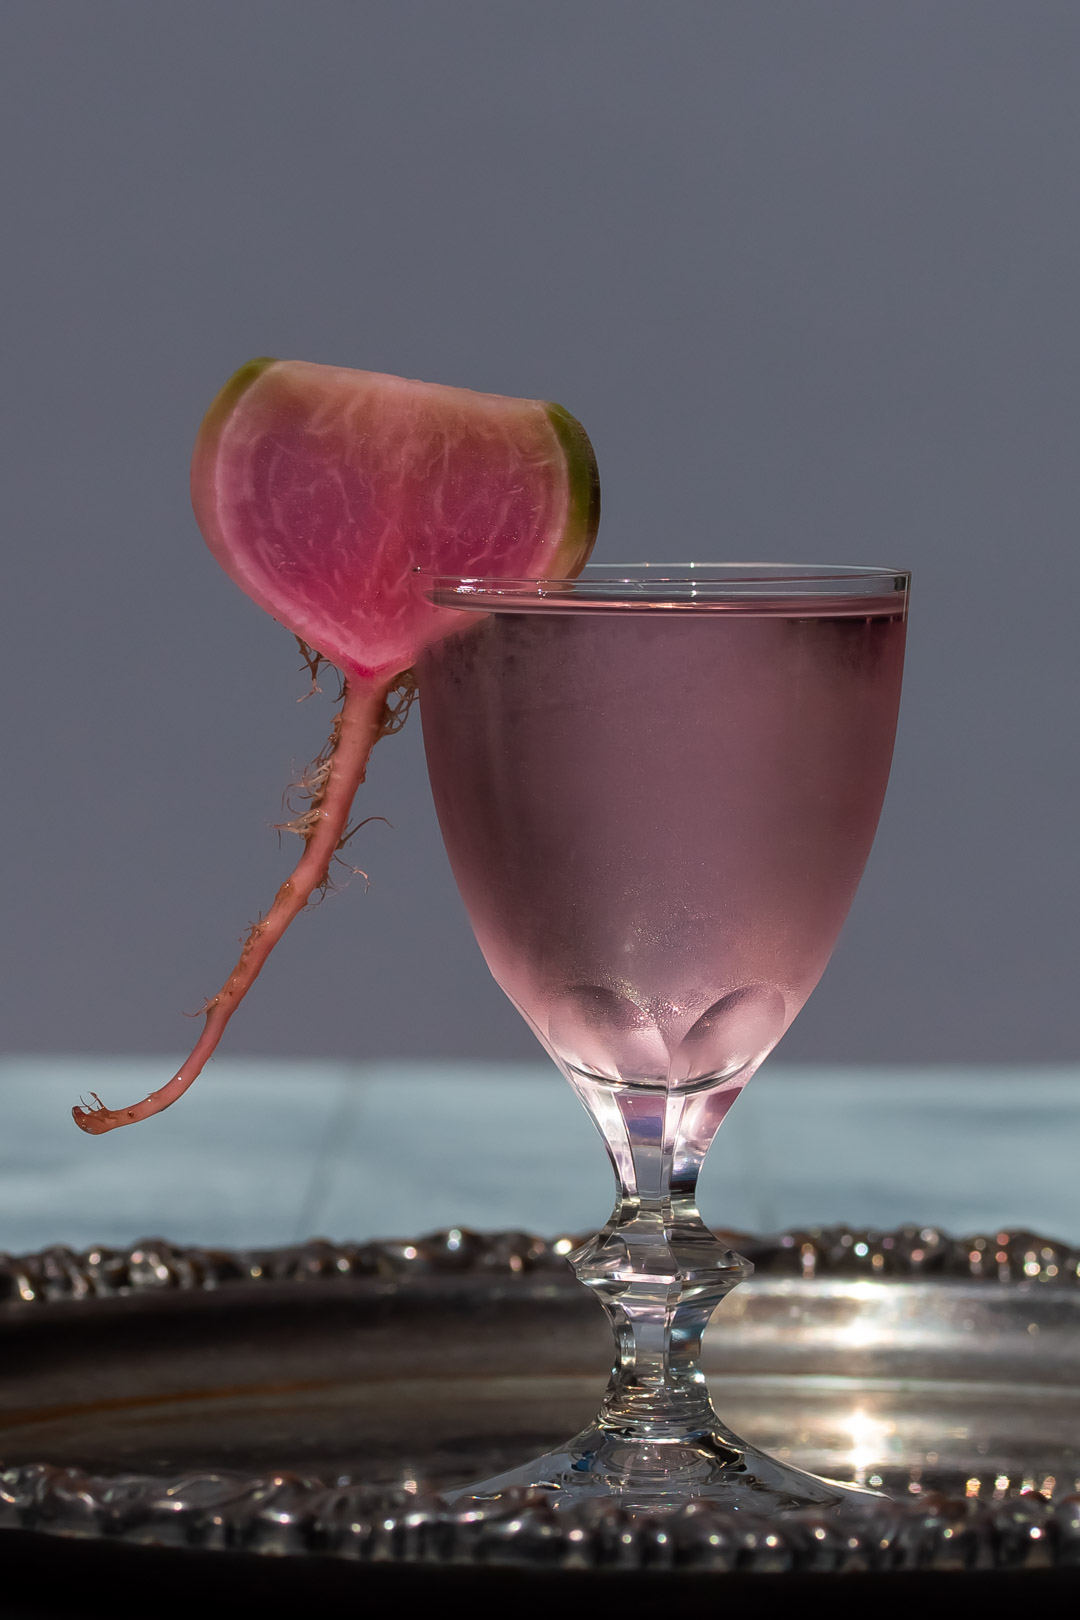 fermented watermelon radish martini on silver tray with blurred background